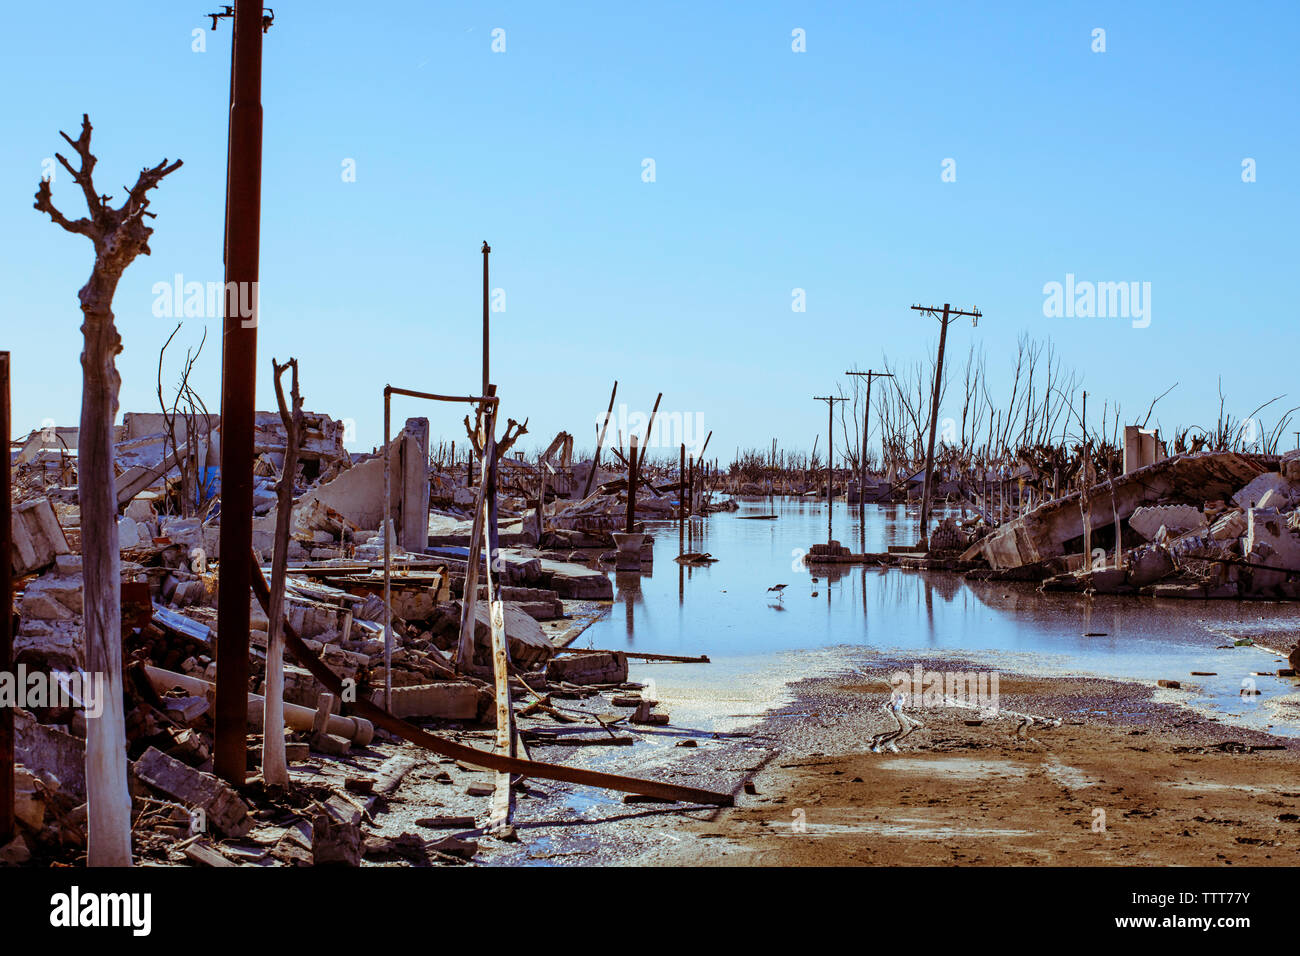 Demolished buildings against clear blue sky during Hurricane Harvey - Stock Image